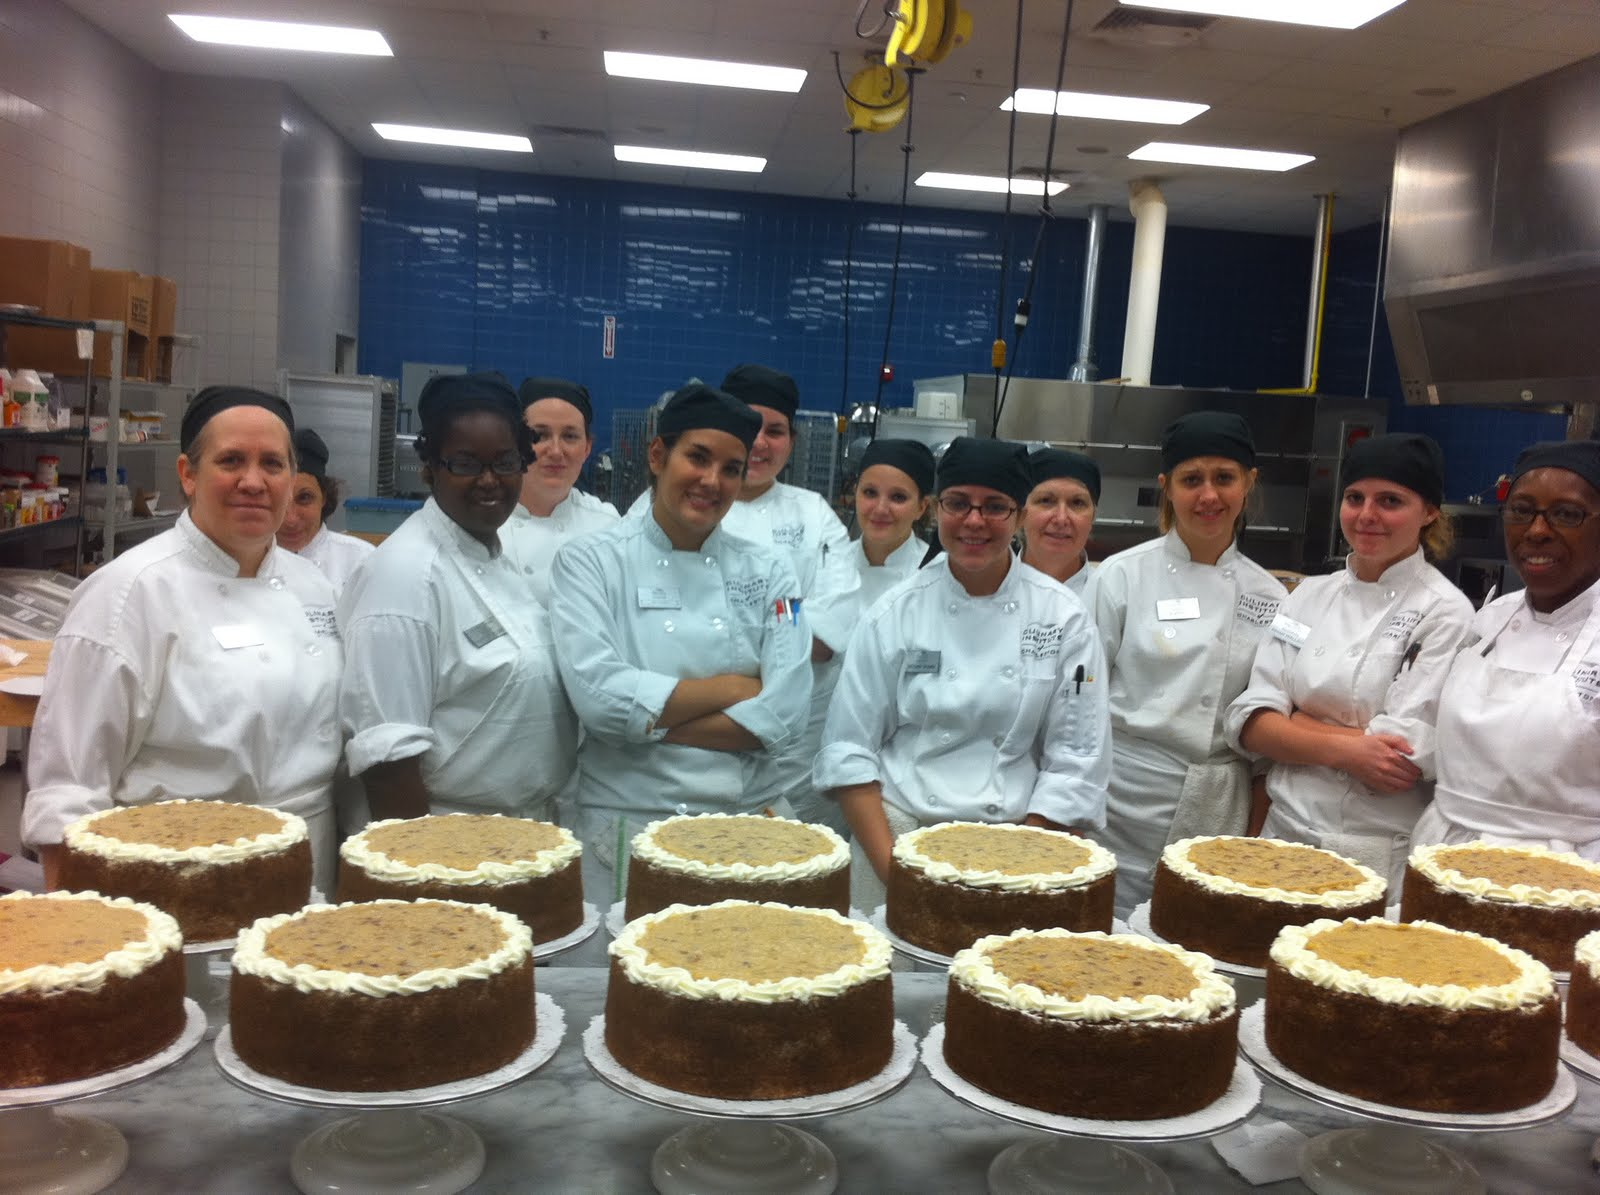 Decorated German Chocolate Cake The Art Of The Plate German Chocolate Cakes Galore